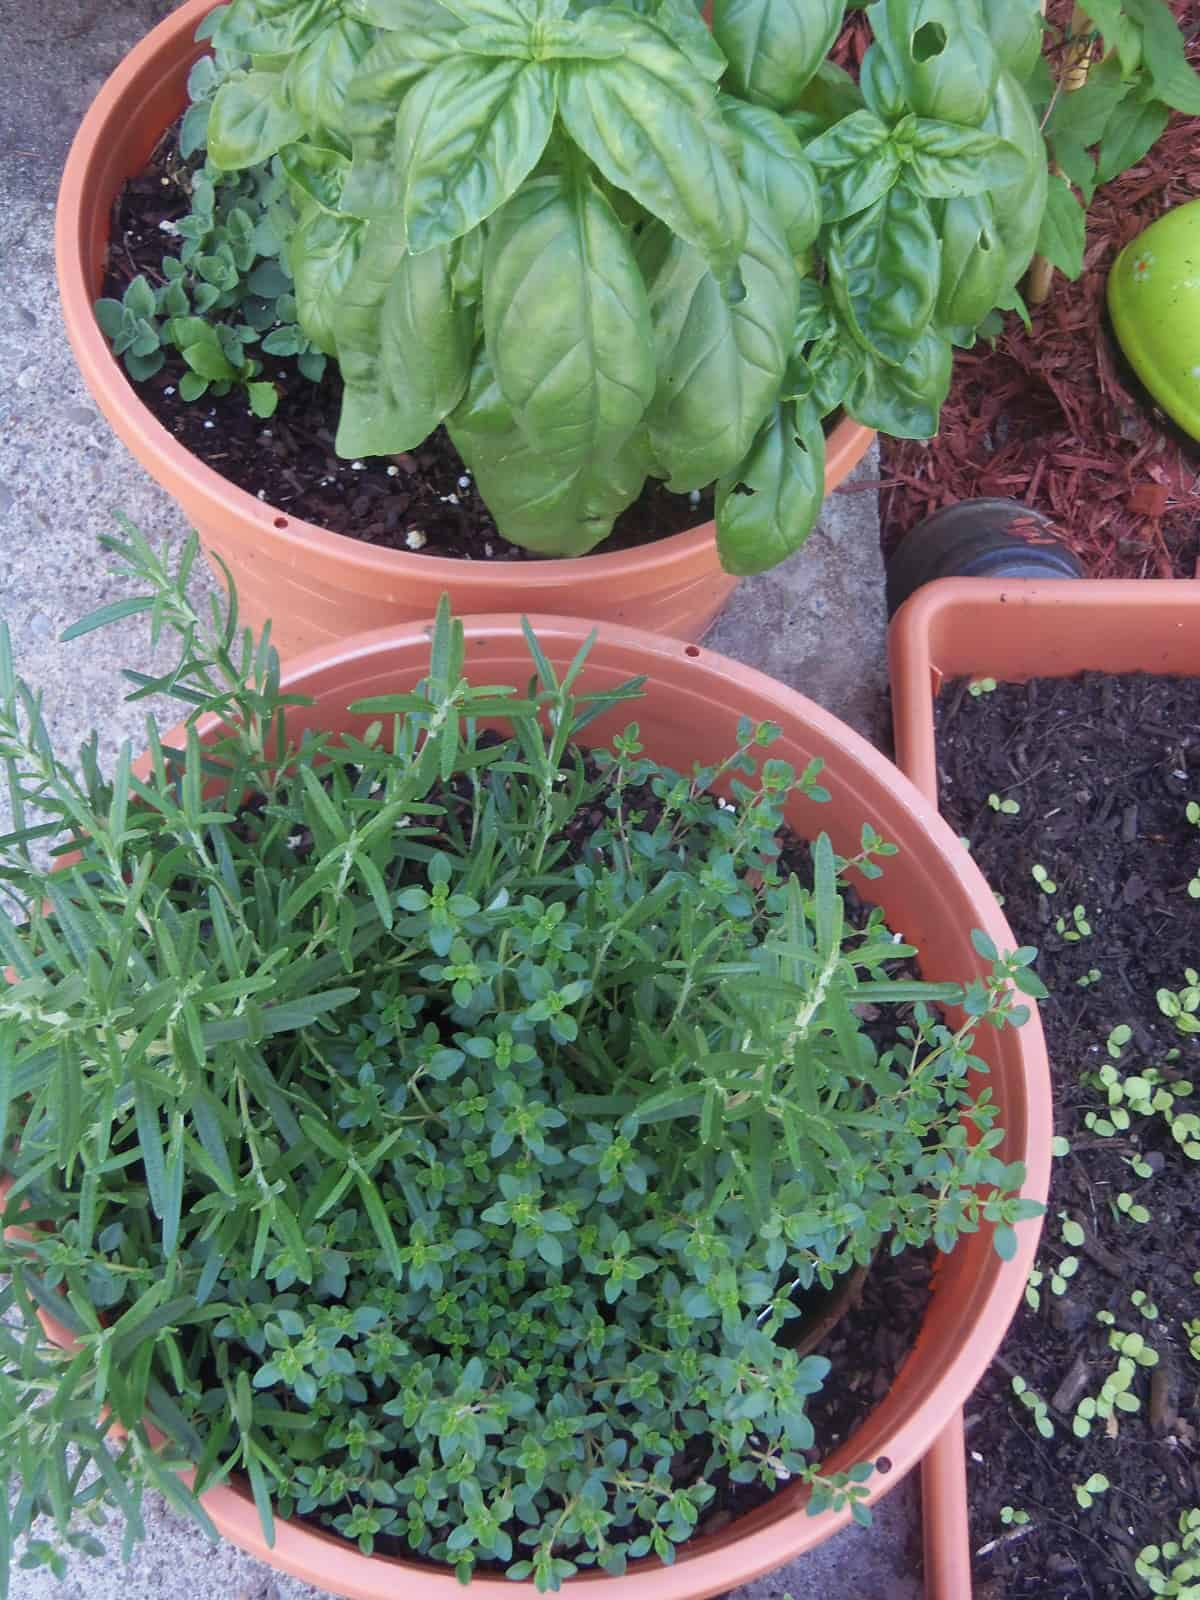 We plant all of our herbs and peppers in pots. Front porch gardening.